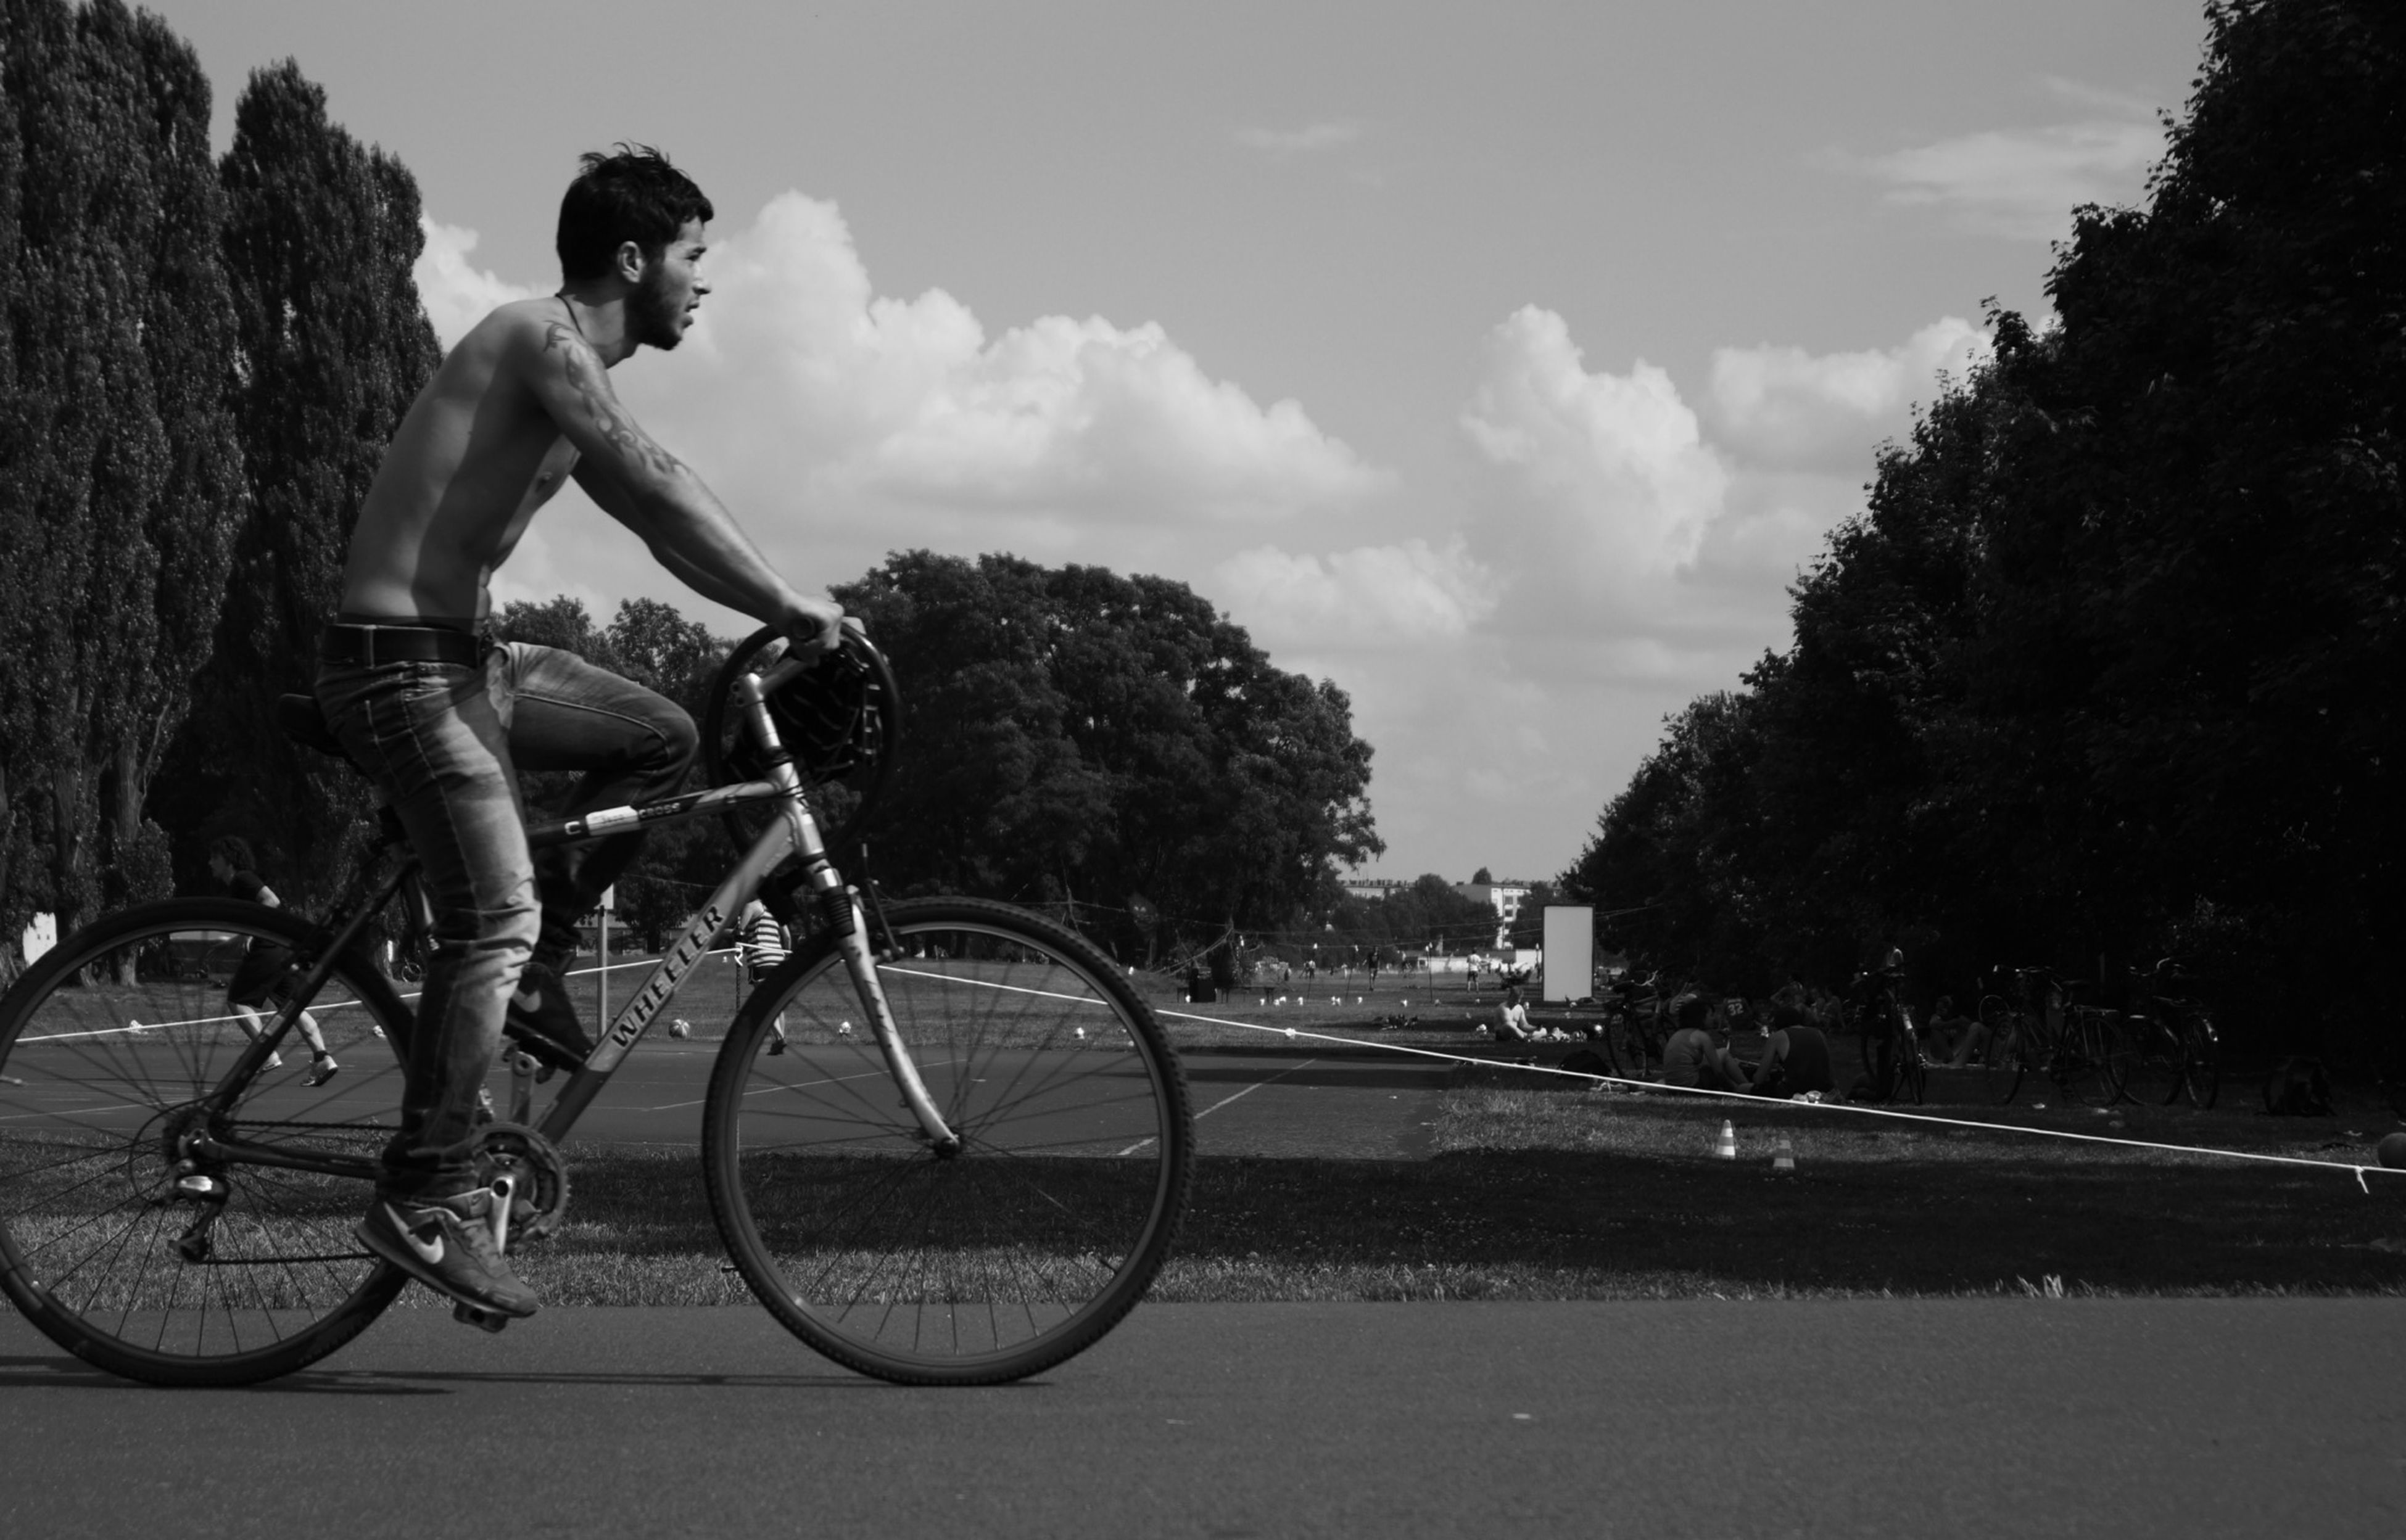 lifestyles, leisure activity, men, bicycle, transportation, riding, mode of transport, land vehicle, person, sky, cycling, full length, motion, on the move, sport, tree, unrecognizable person